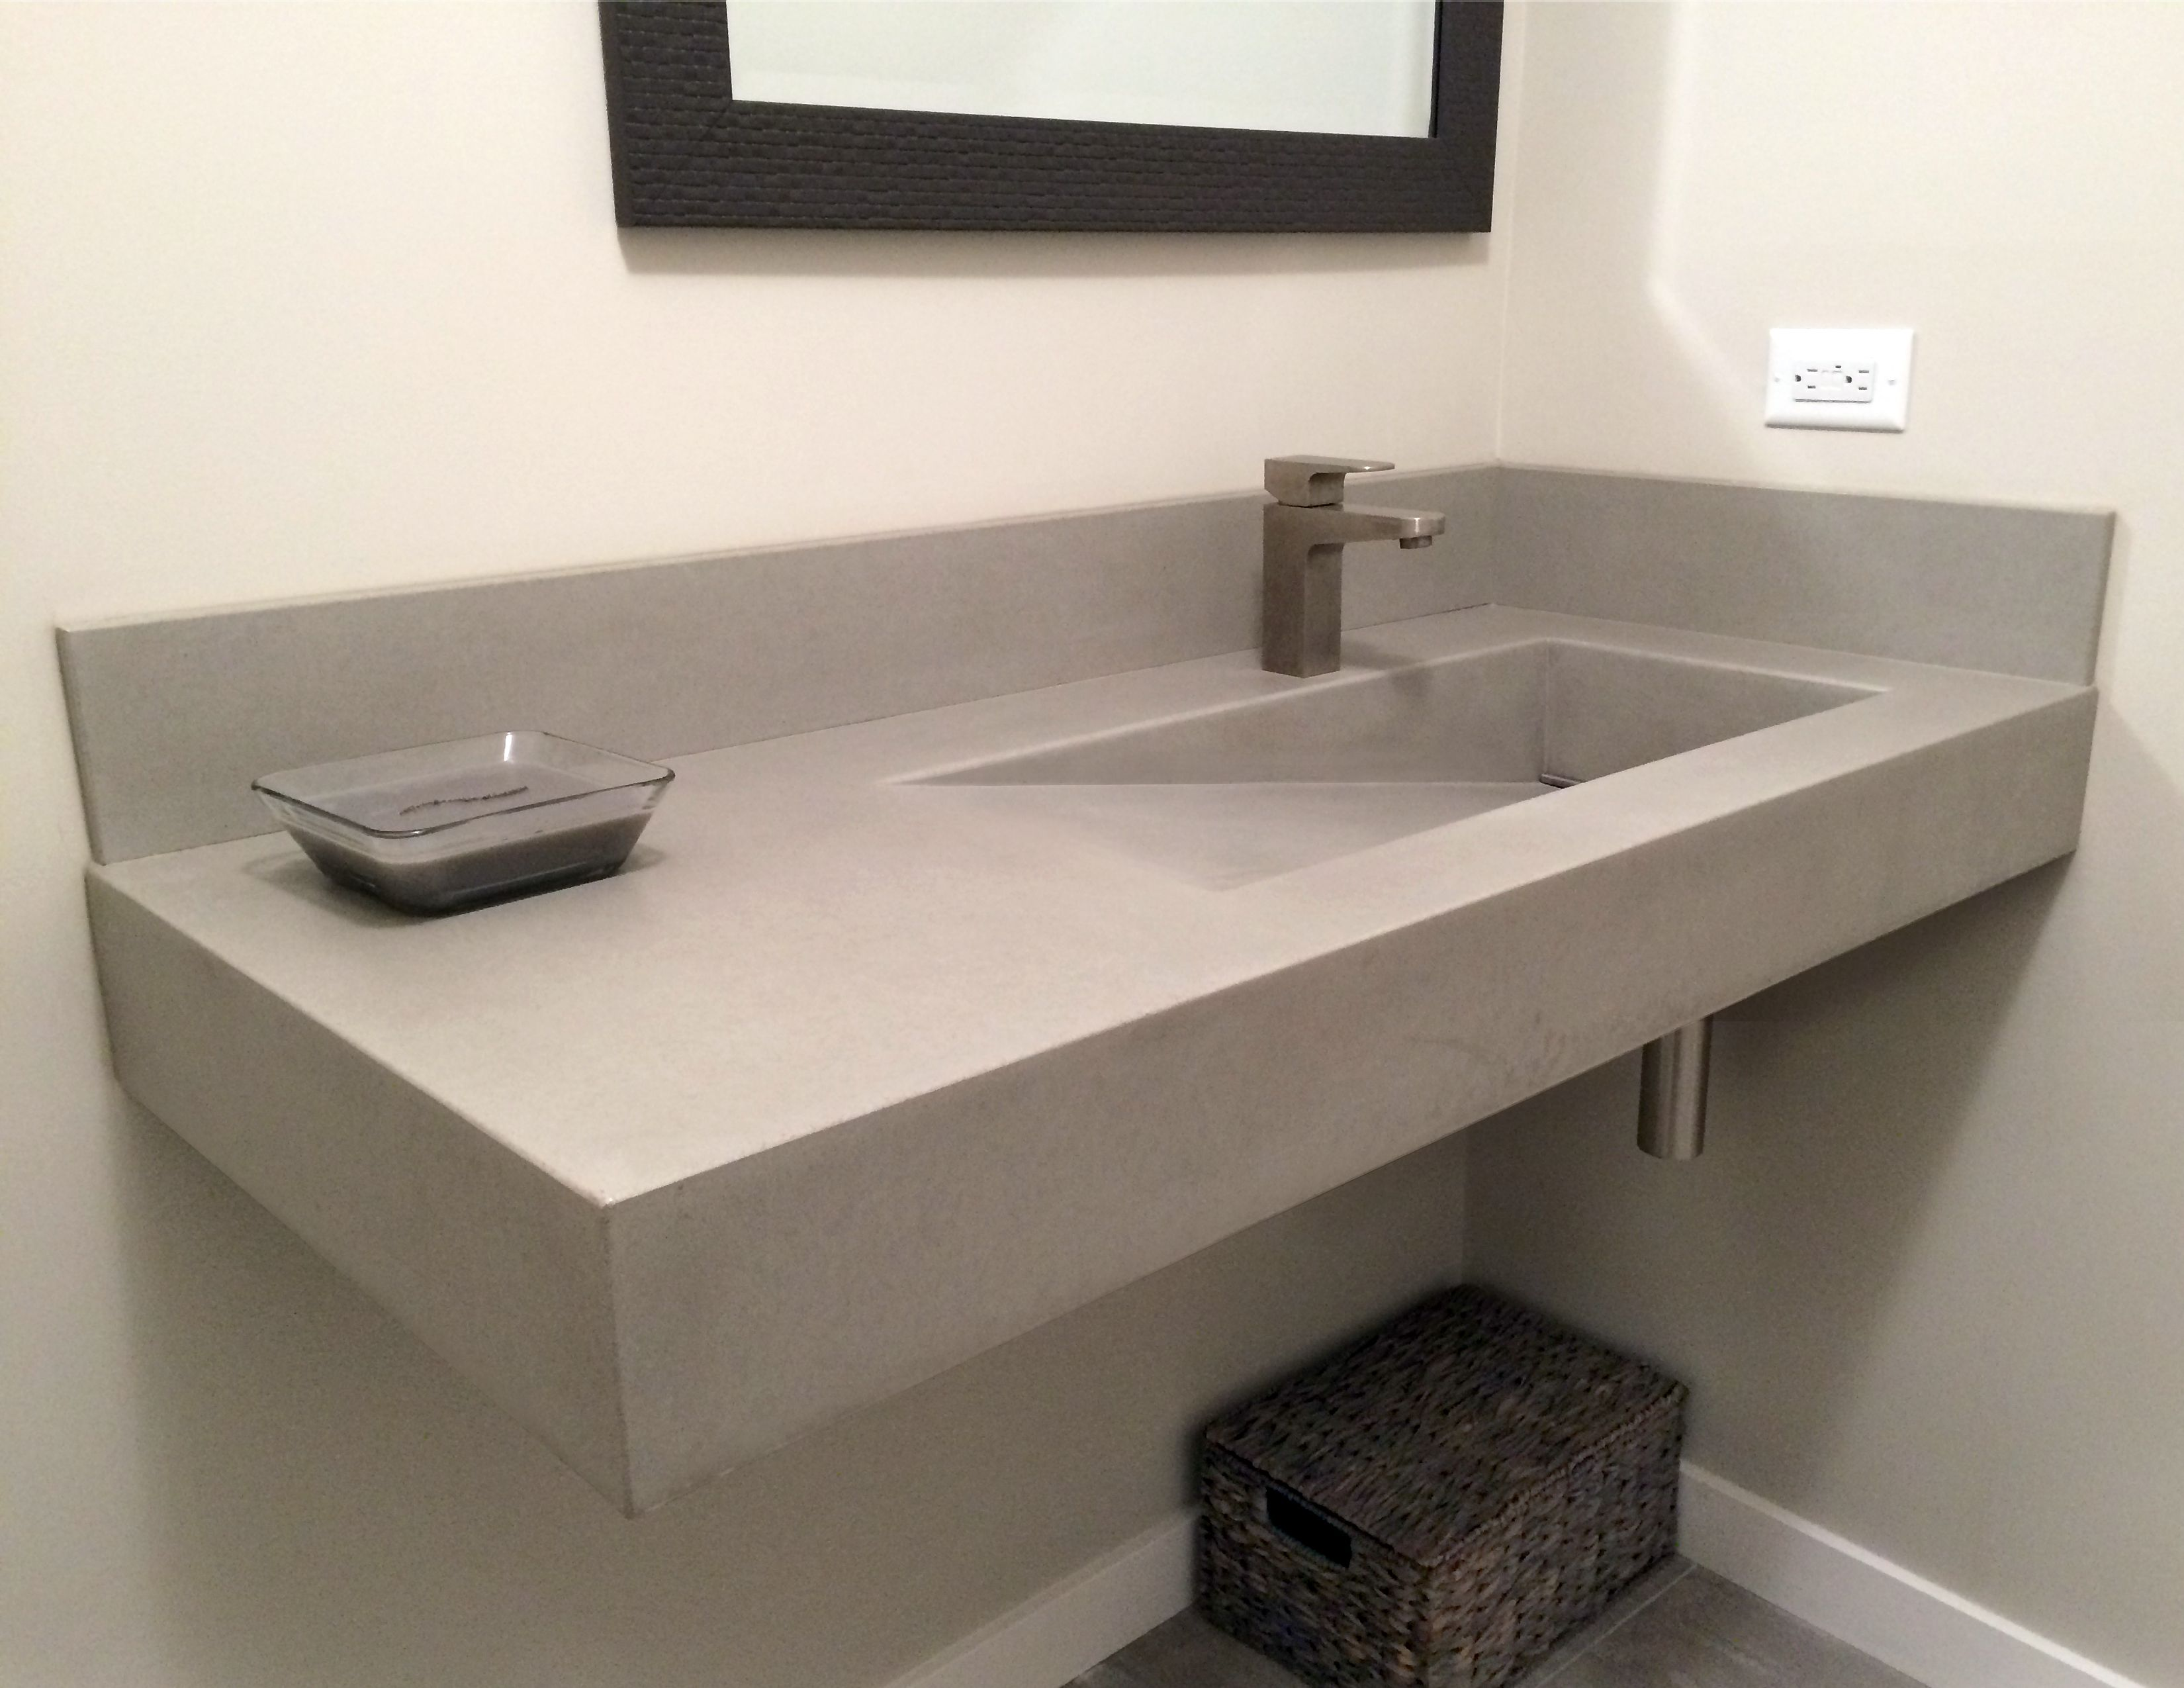 Wall Hung Concrete Bathroom Sink With A Custom Ramp Sink By Trueform  Concrete #TrueformConcrete #